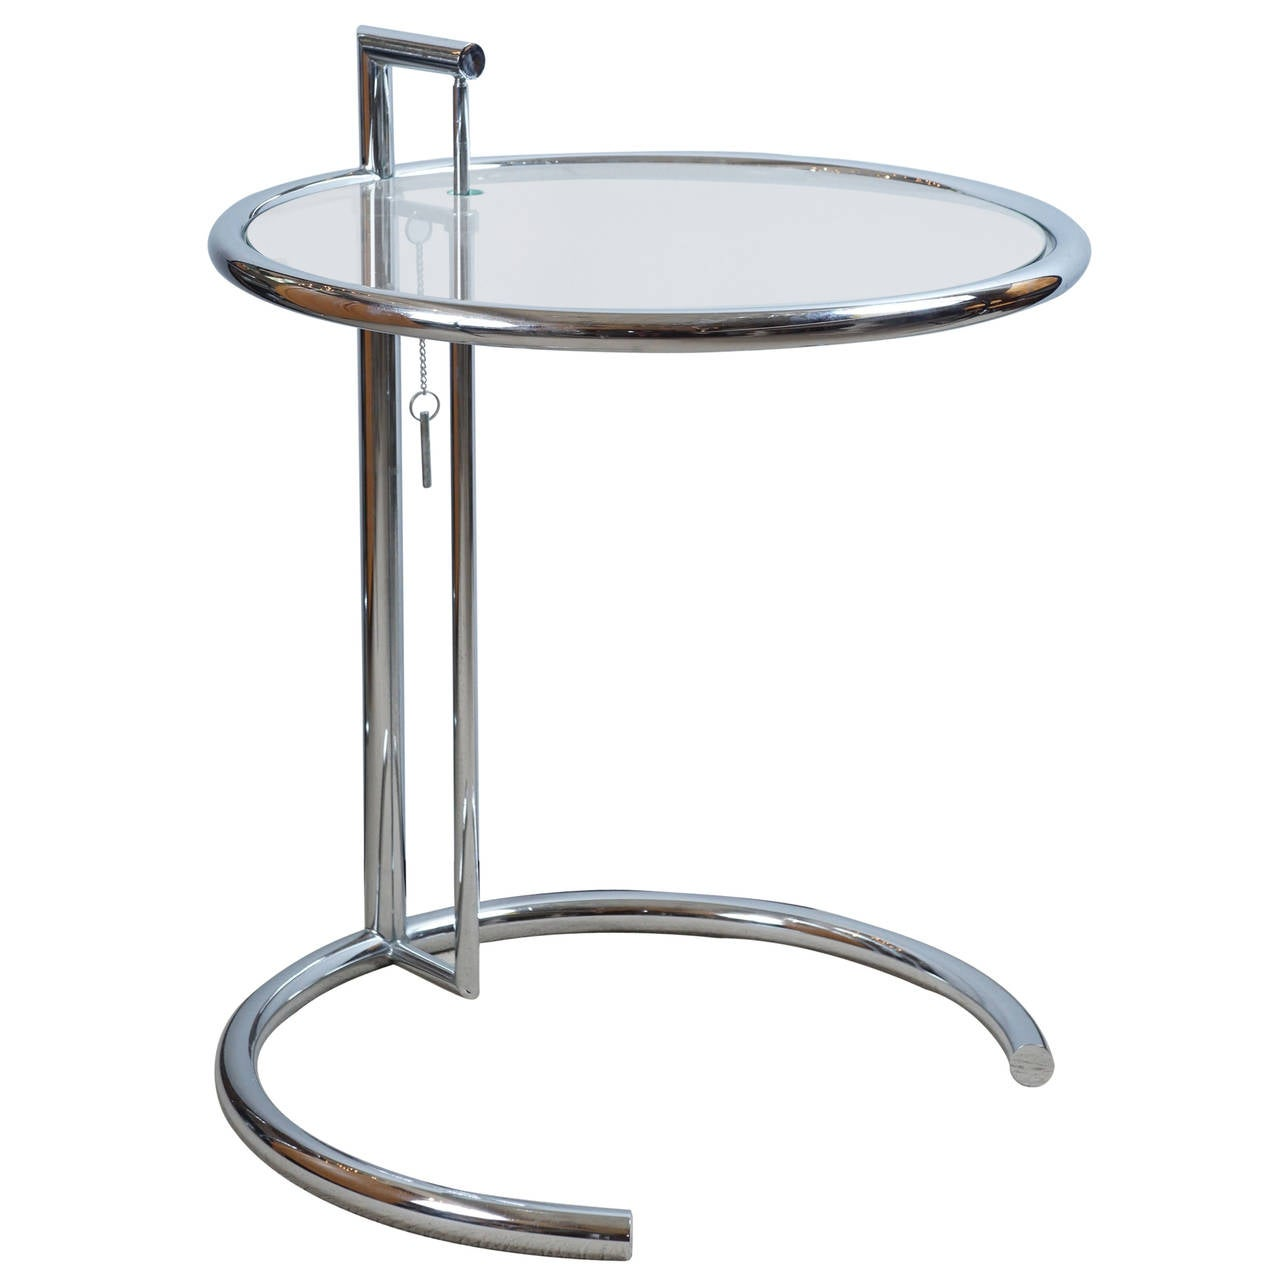 eileen gray chrome and glass table at 1stdibs. Black Bedroom Furniture Sets. Home Design Ideas